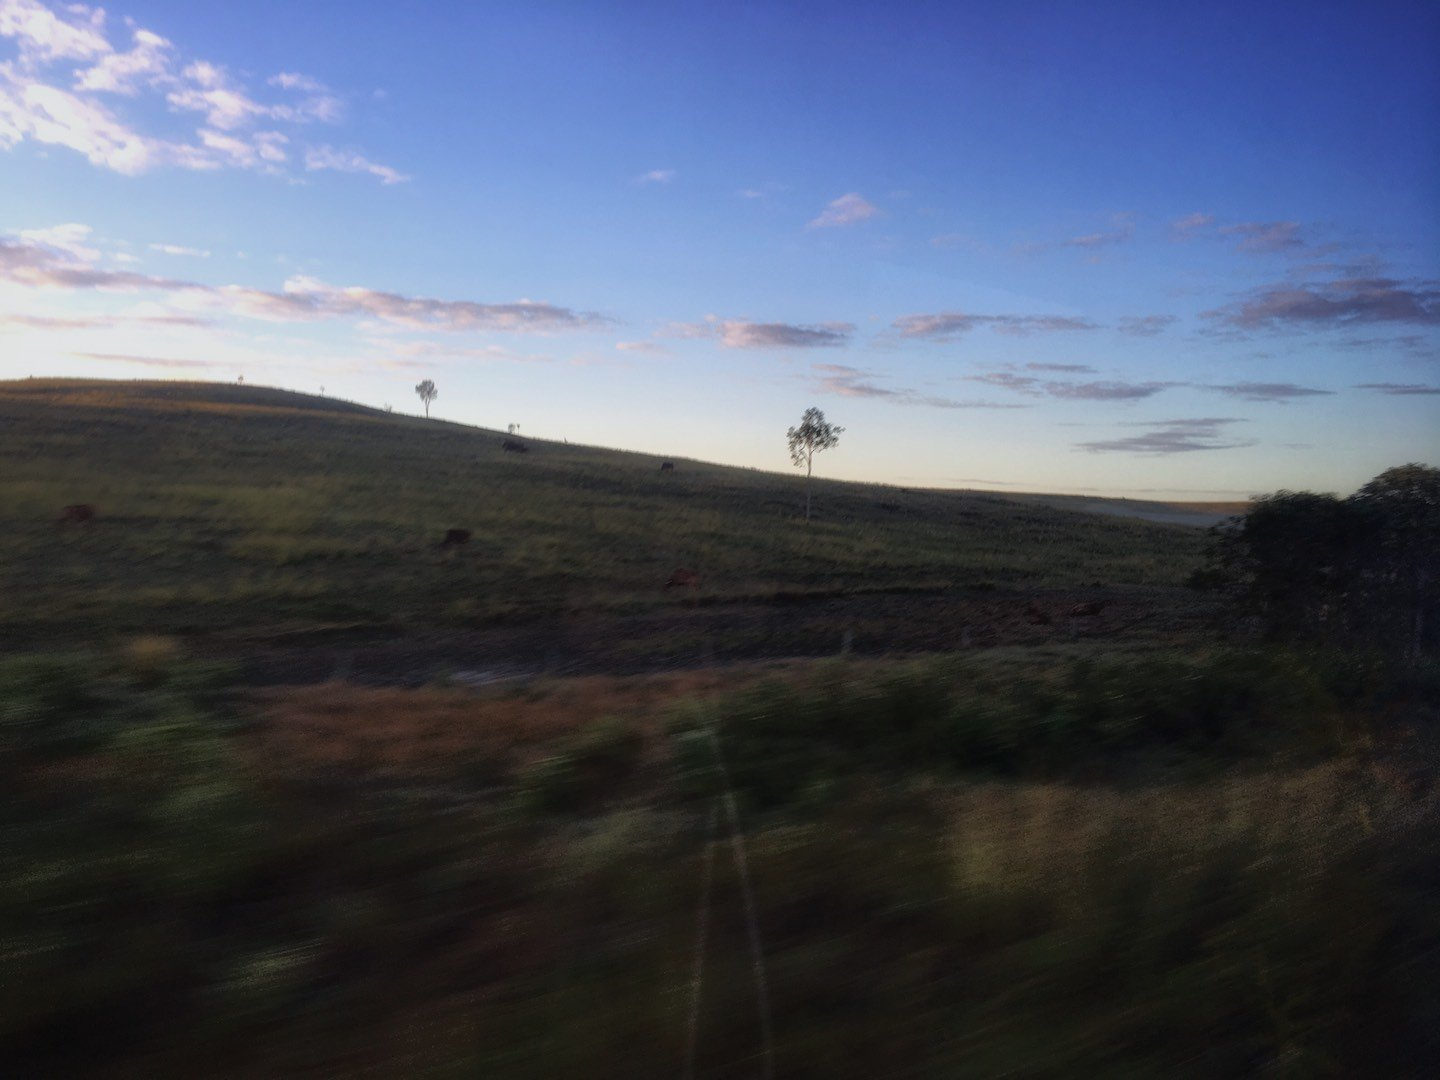 View out the window during an East Coast Australia trip with Greyhound's Whimit pass | Image © ExpatAlli.com